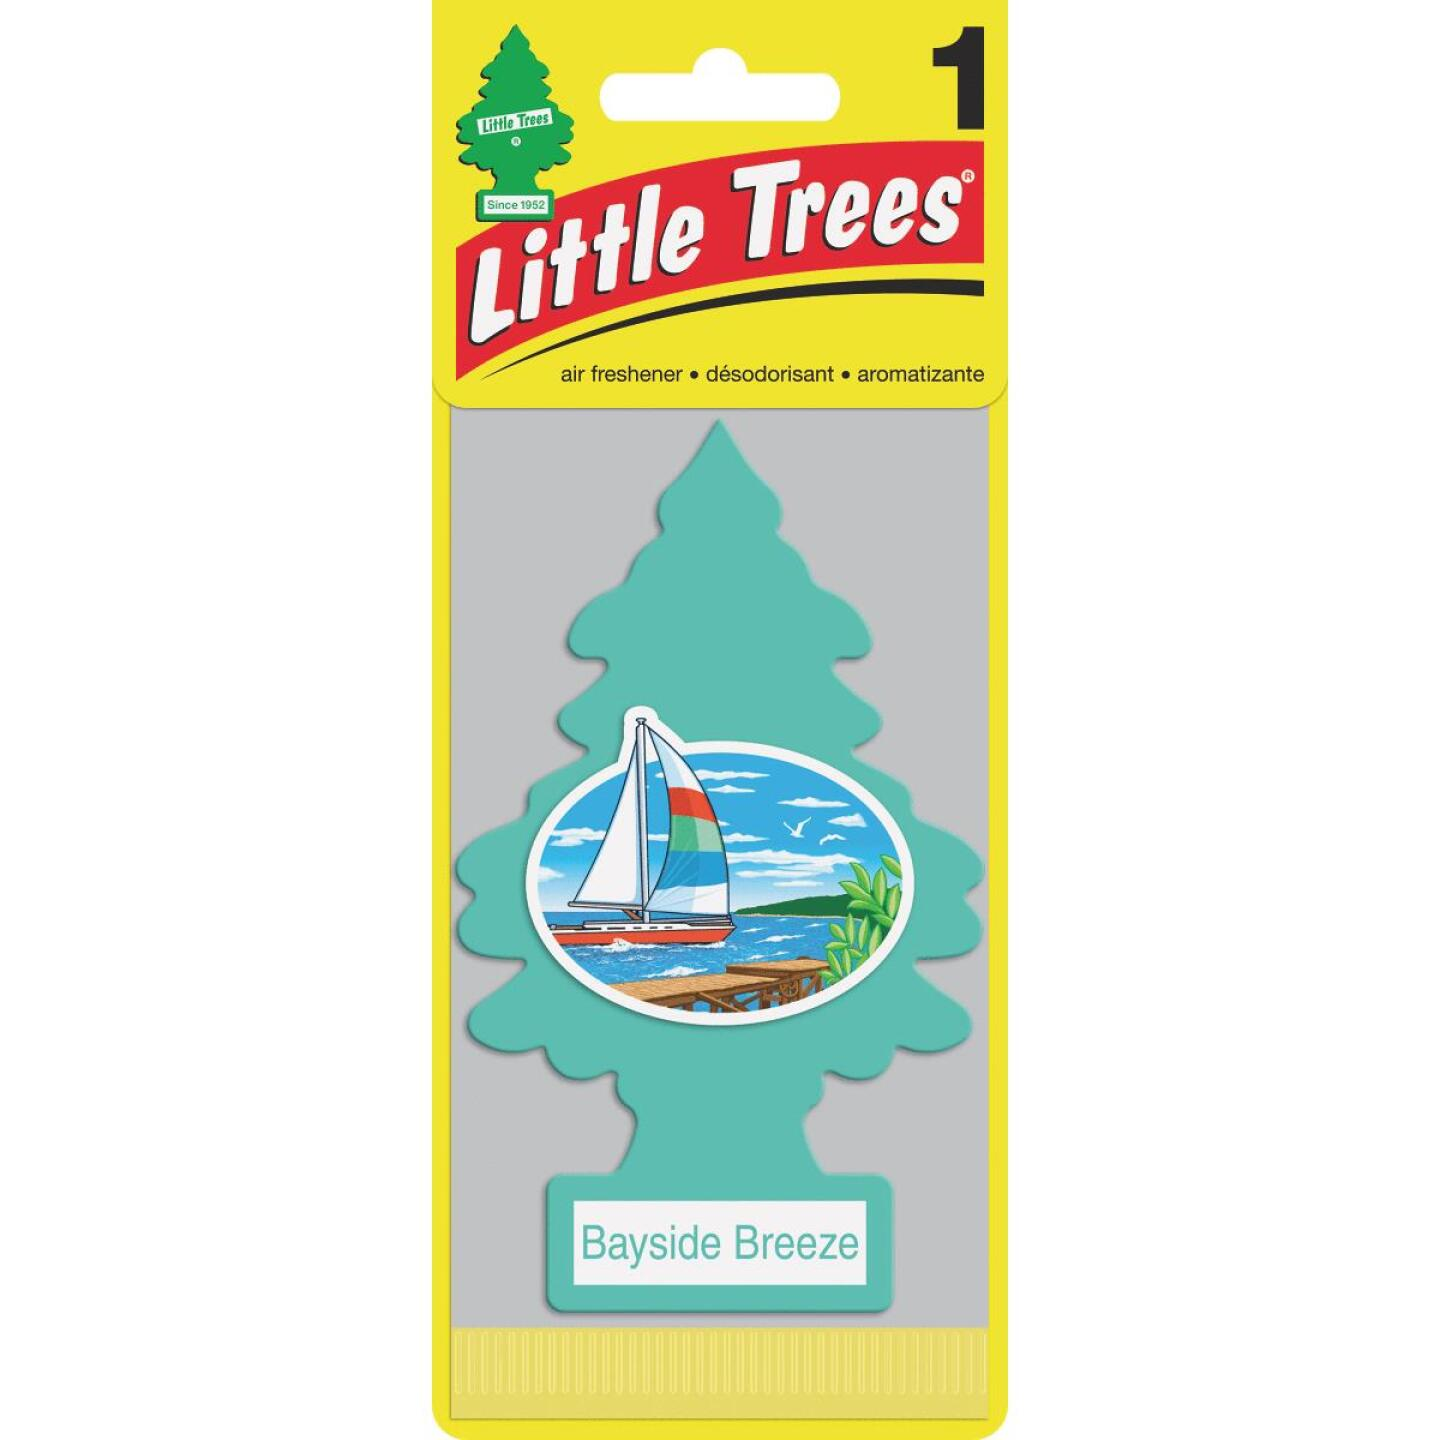 Little Trees Car Air Freshener, Bayside Breeze Image 1